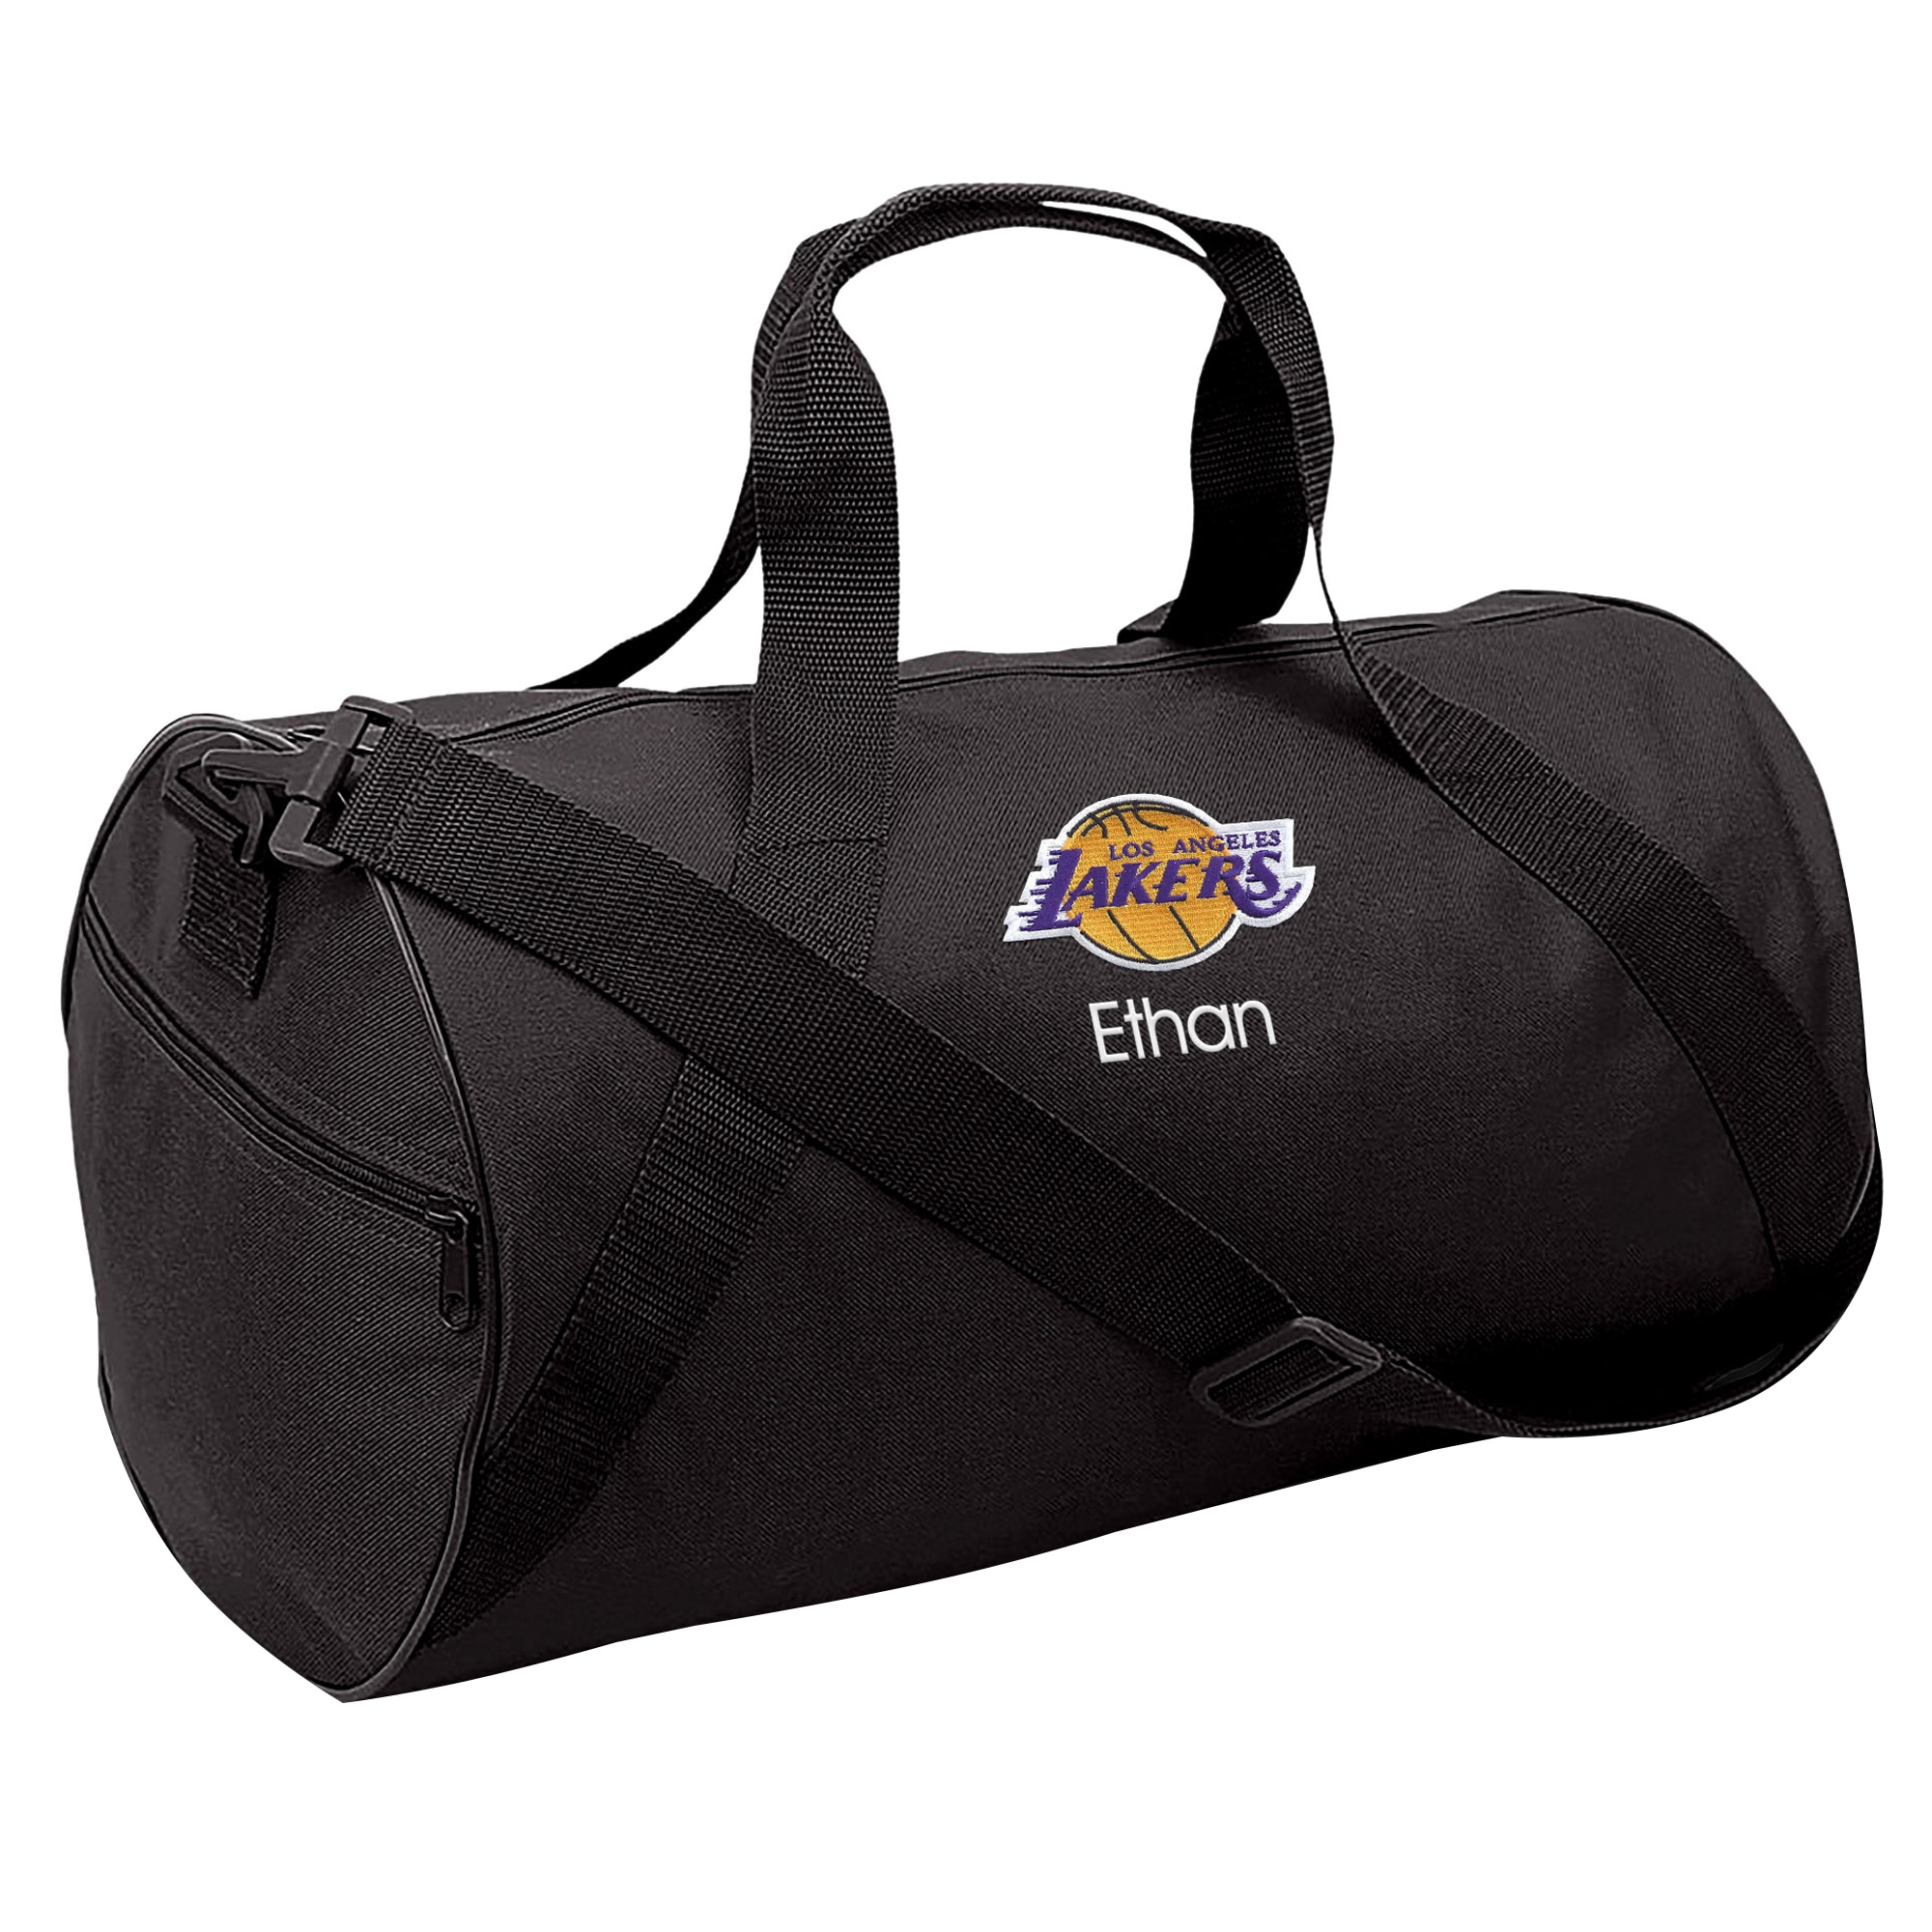 Los Angeles Lakers Youth Personalized Duffle Bag - Black